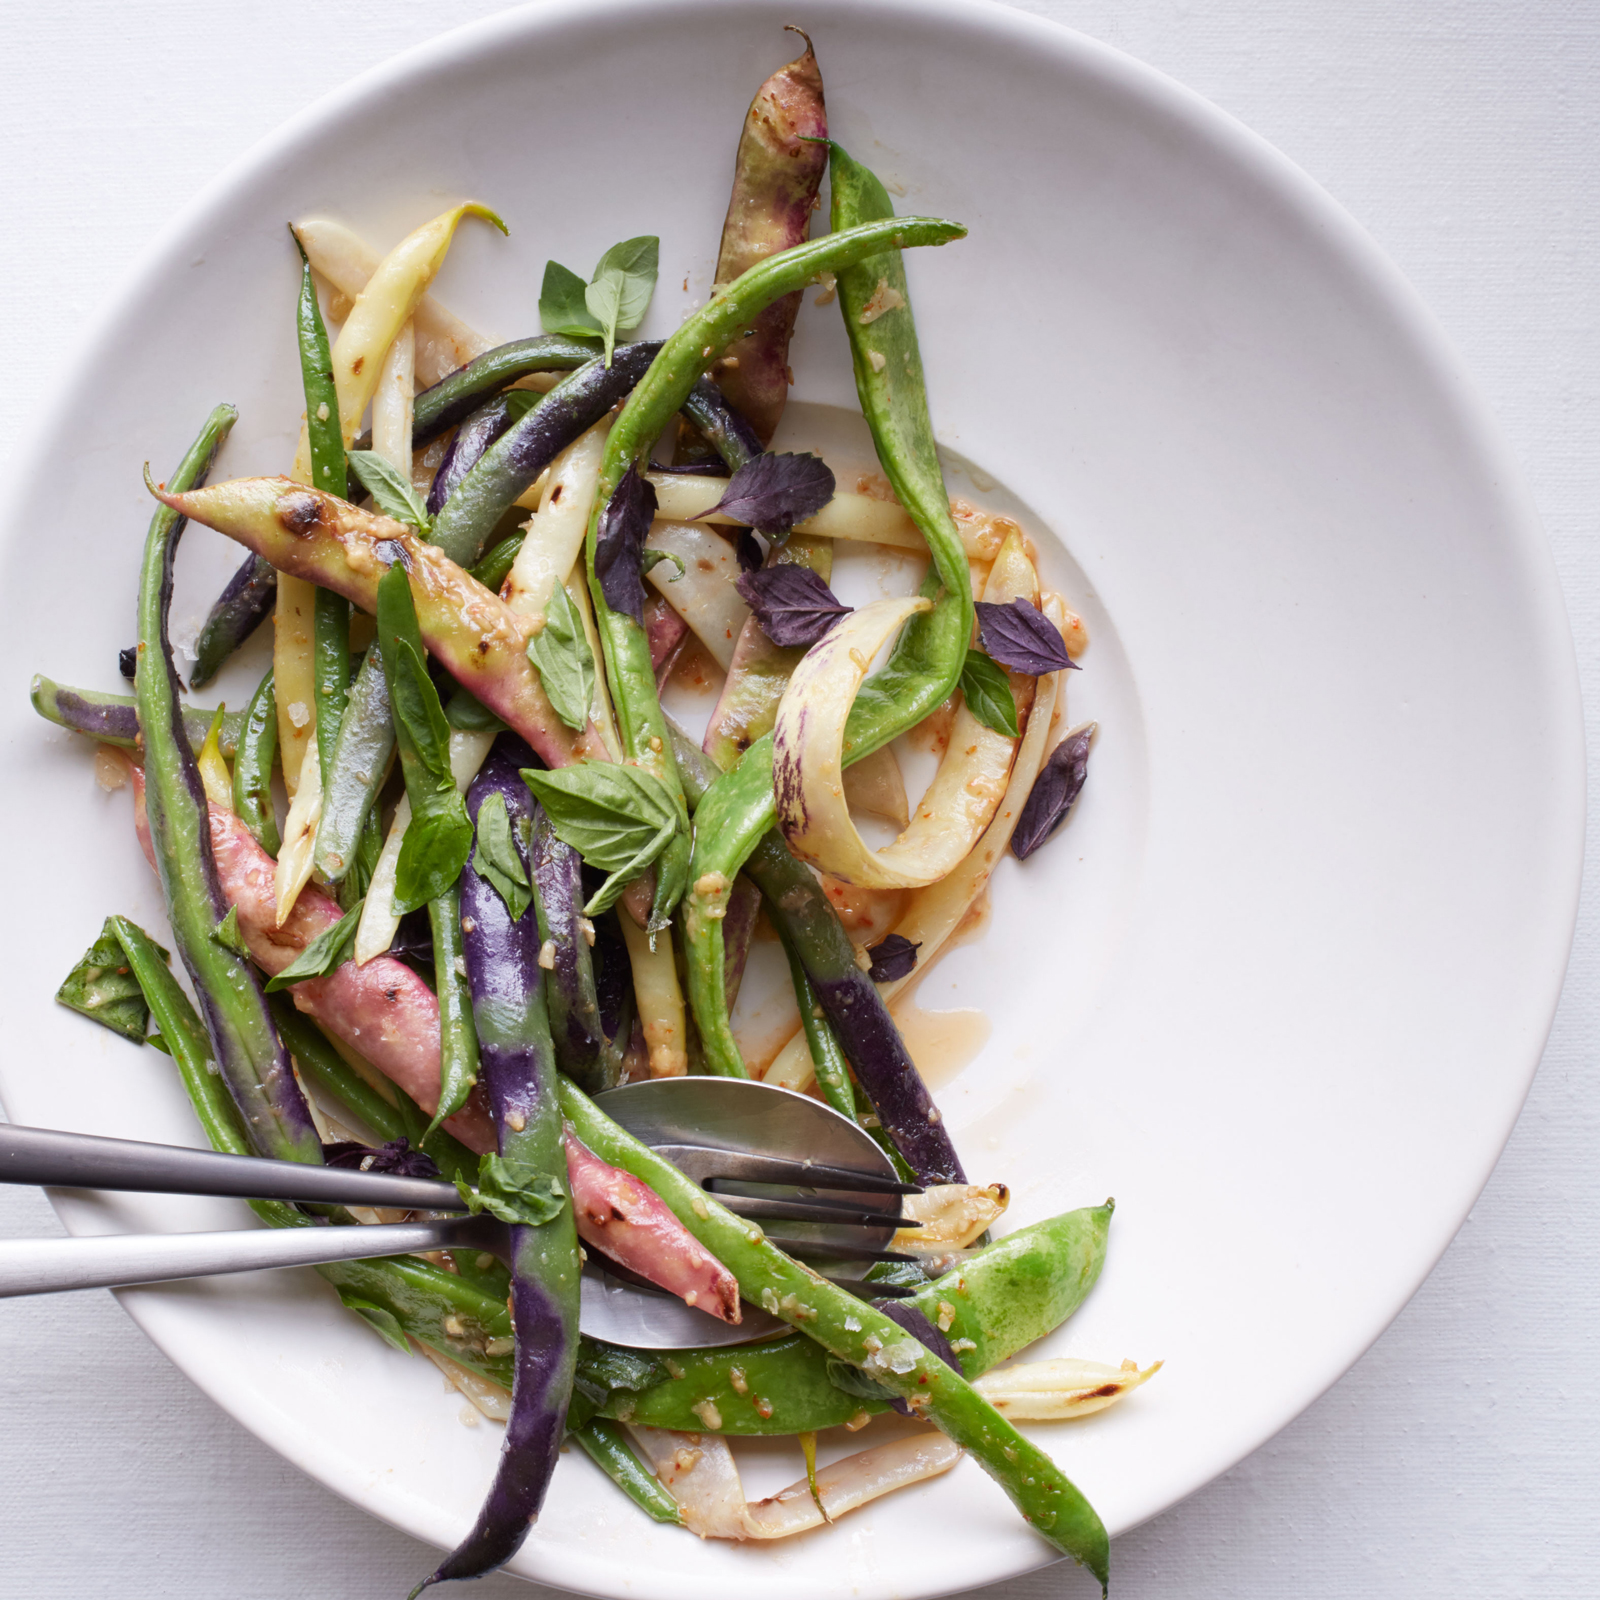 Summer Bean Salad with Roasted Garlic Vinaigrette